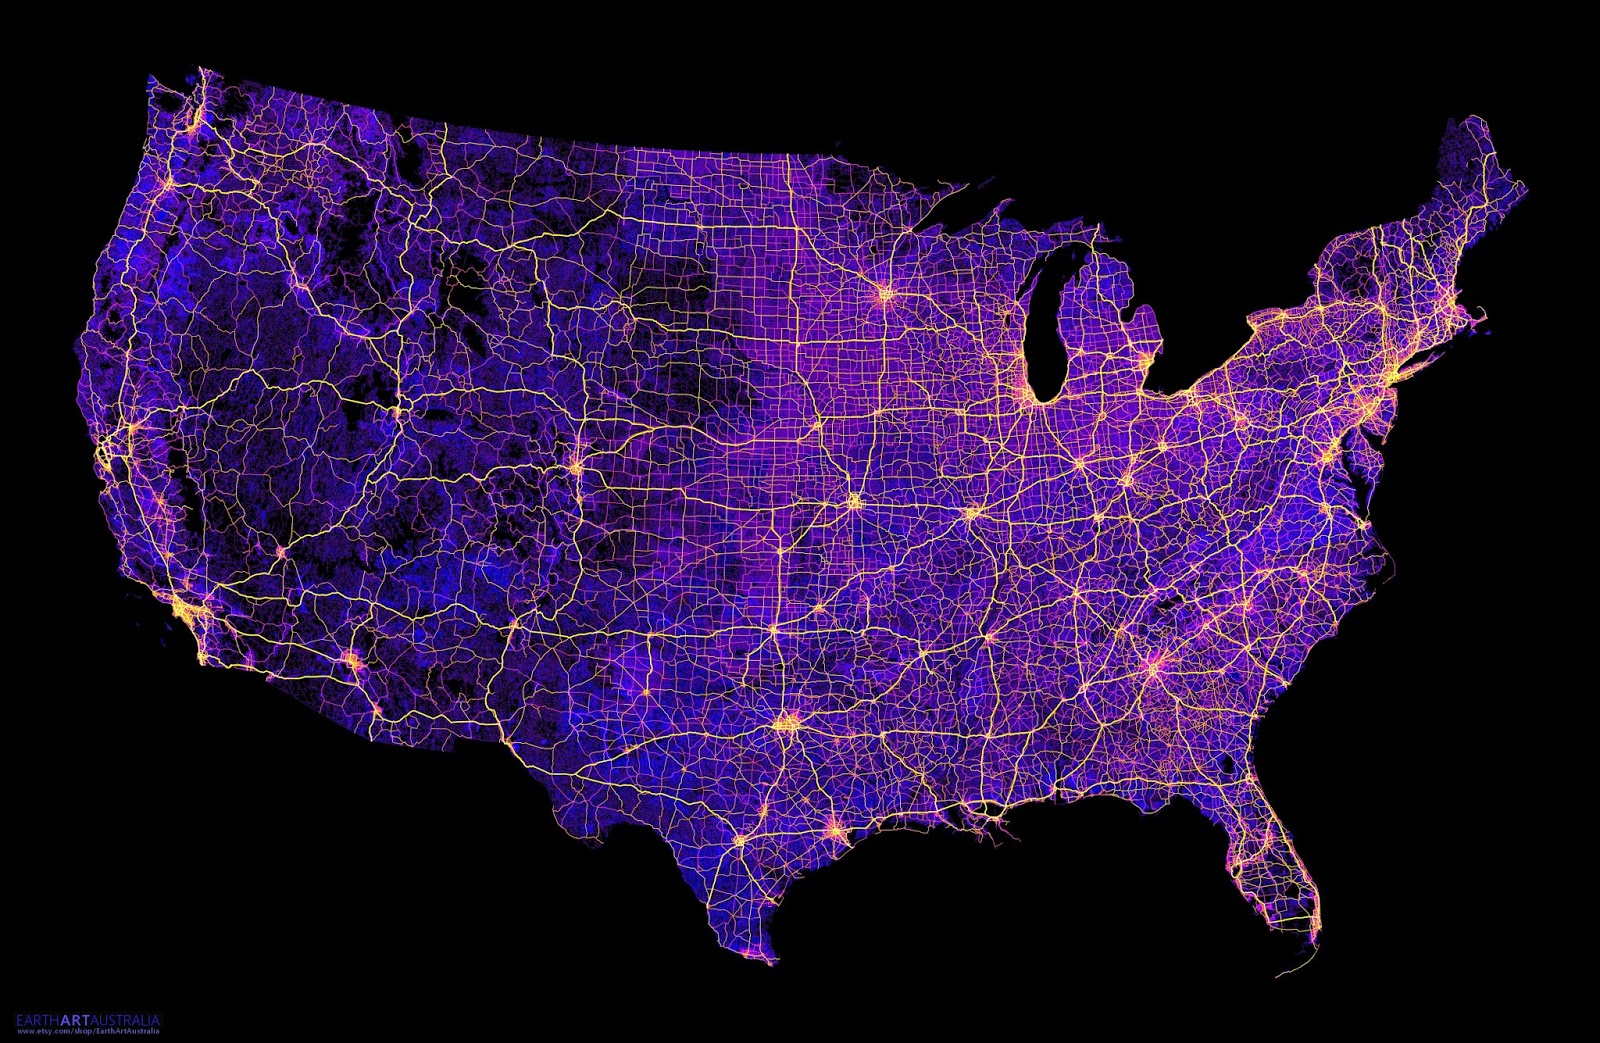 The contiguous U.S. mapped only by dirt trails, roads & highways